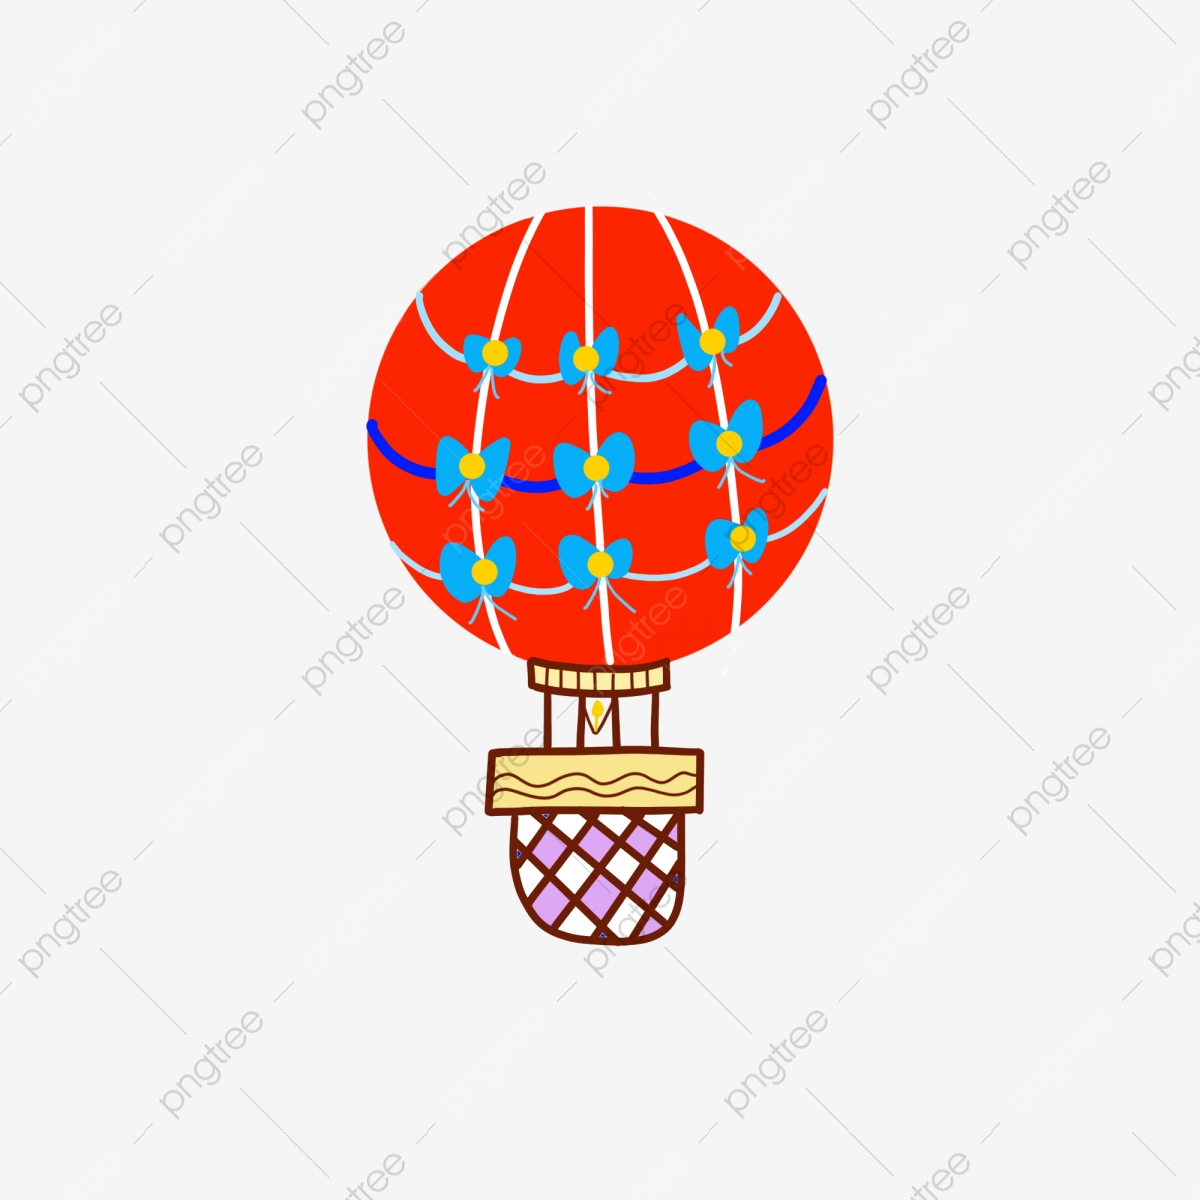 He Png Images Vector And Psd Files Free Download On Pngtree Png images and cliparts for web design. https pngtree com freepng balloon firecracker he xinchun firecracker 3918480 html